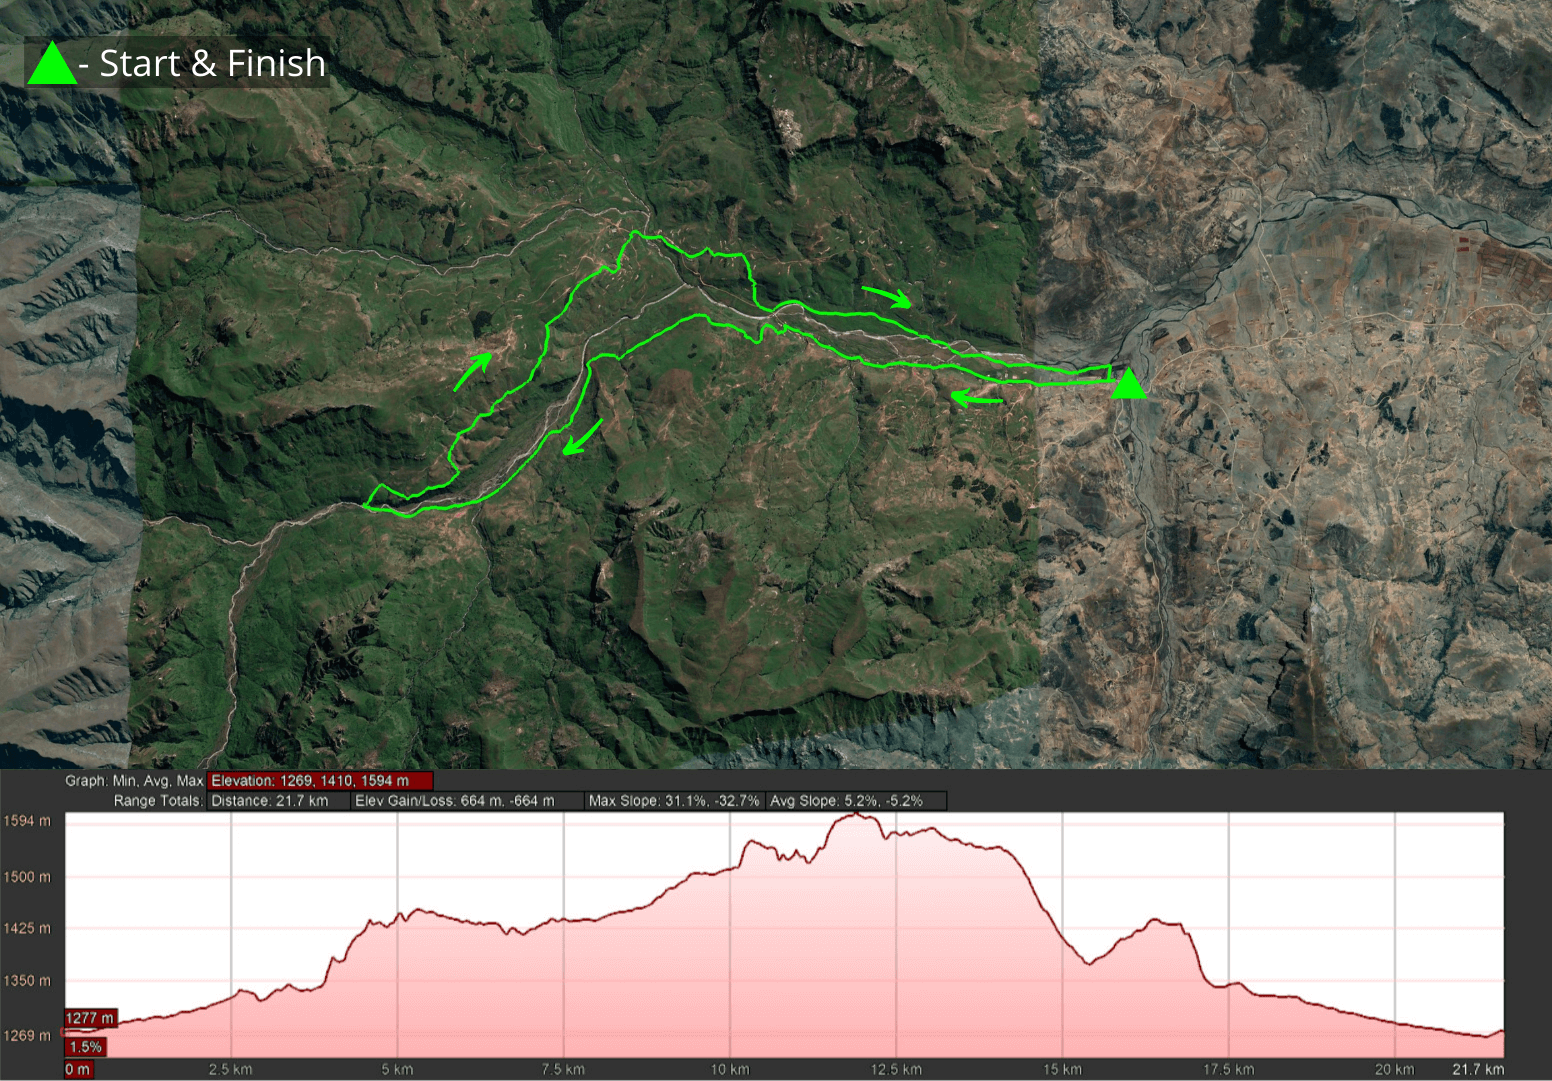 KZNTR MMS Mnweni Mountain Marathon May21 - 20km Course Route and Profile (Directioned) 2021-02-04 V1